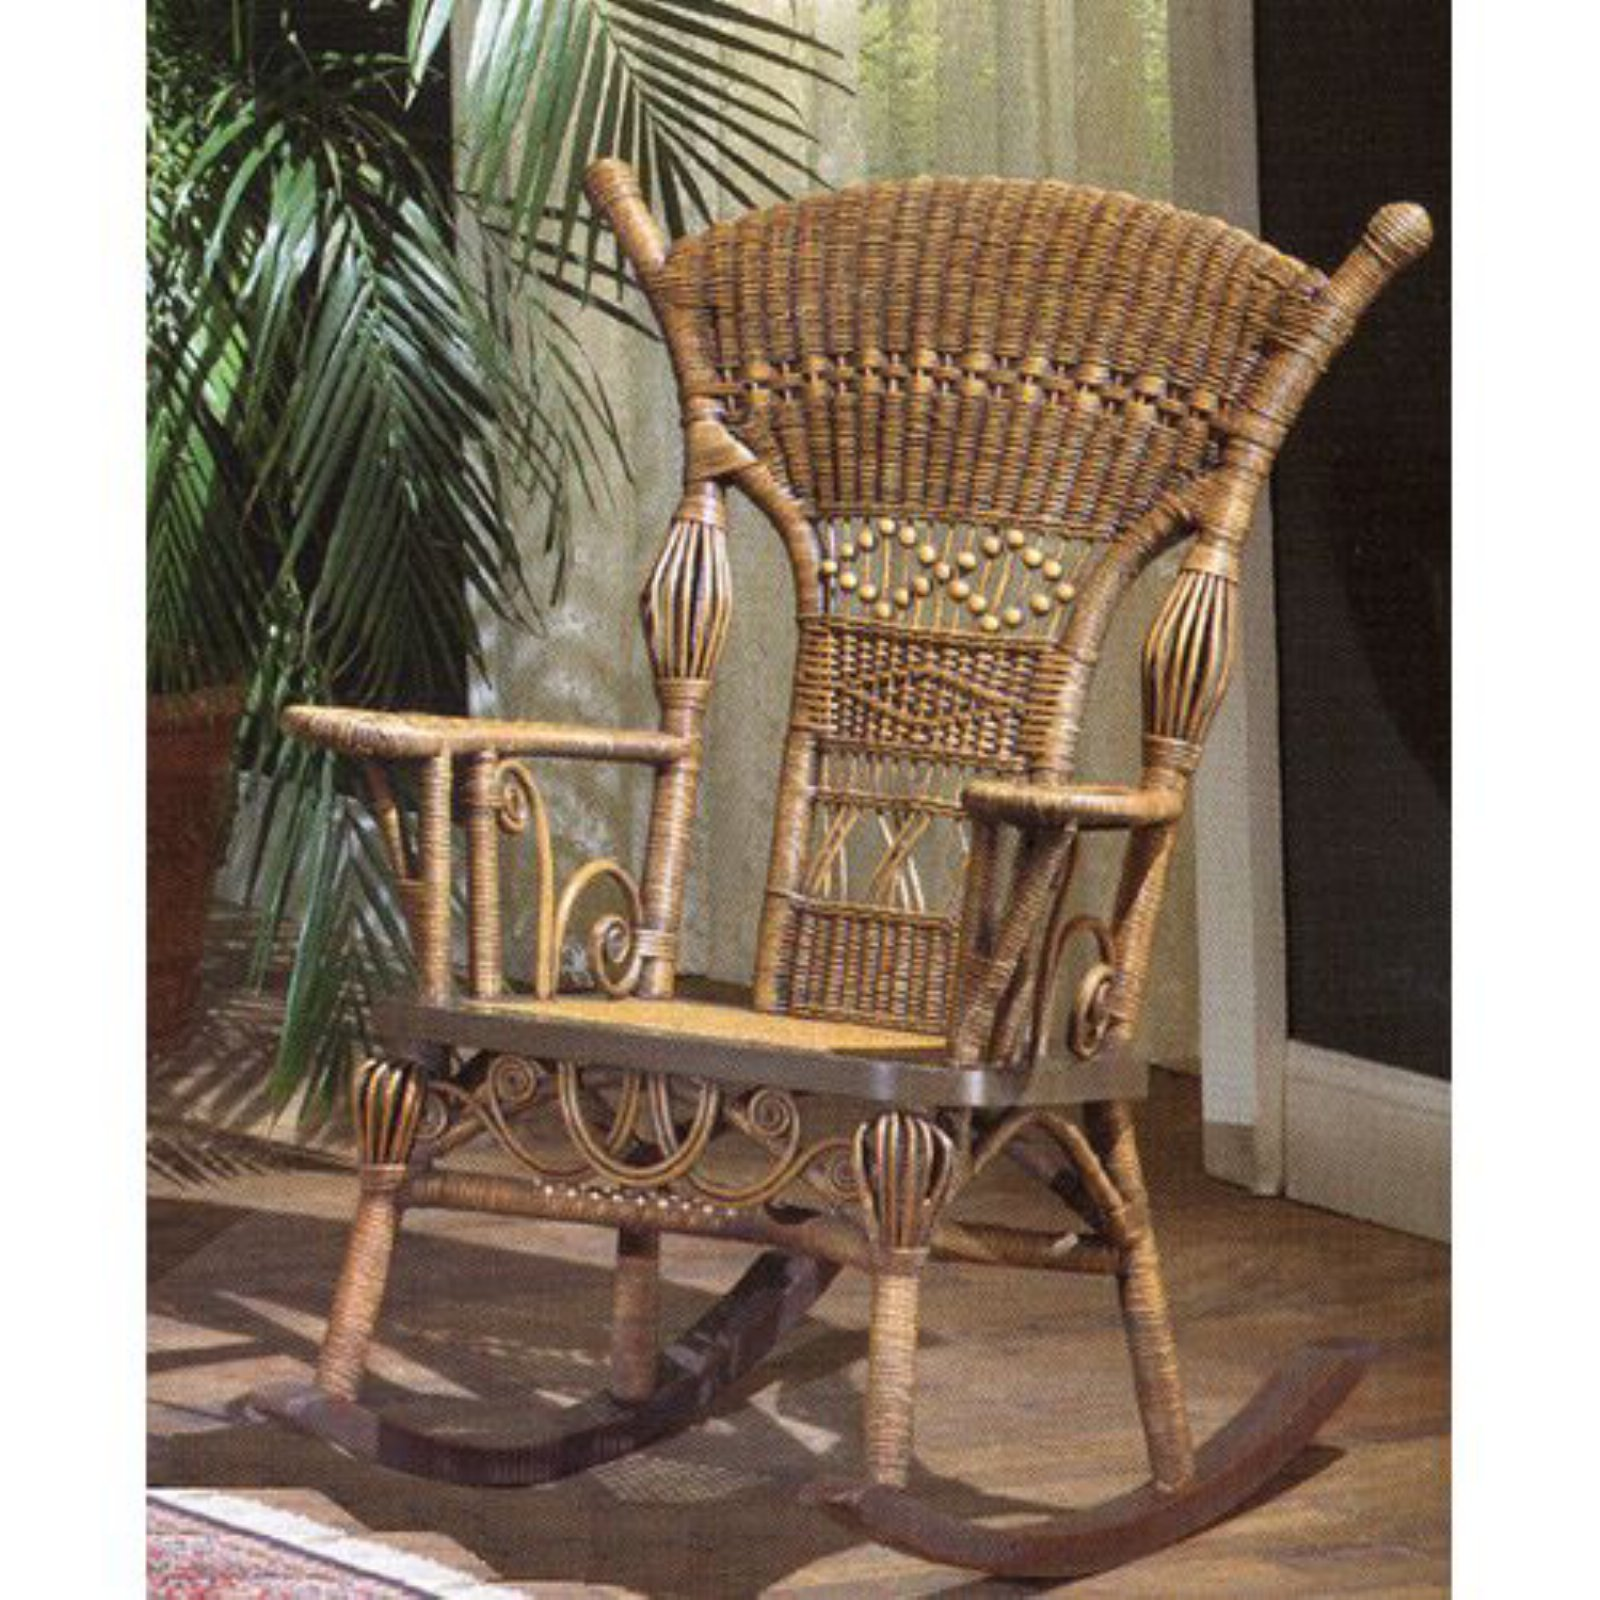 Aunt Millie Wicker Rocking Chair